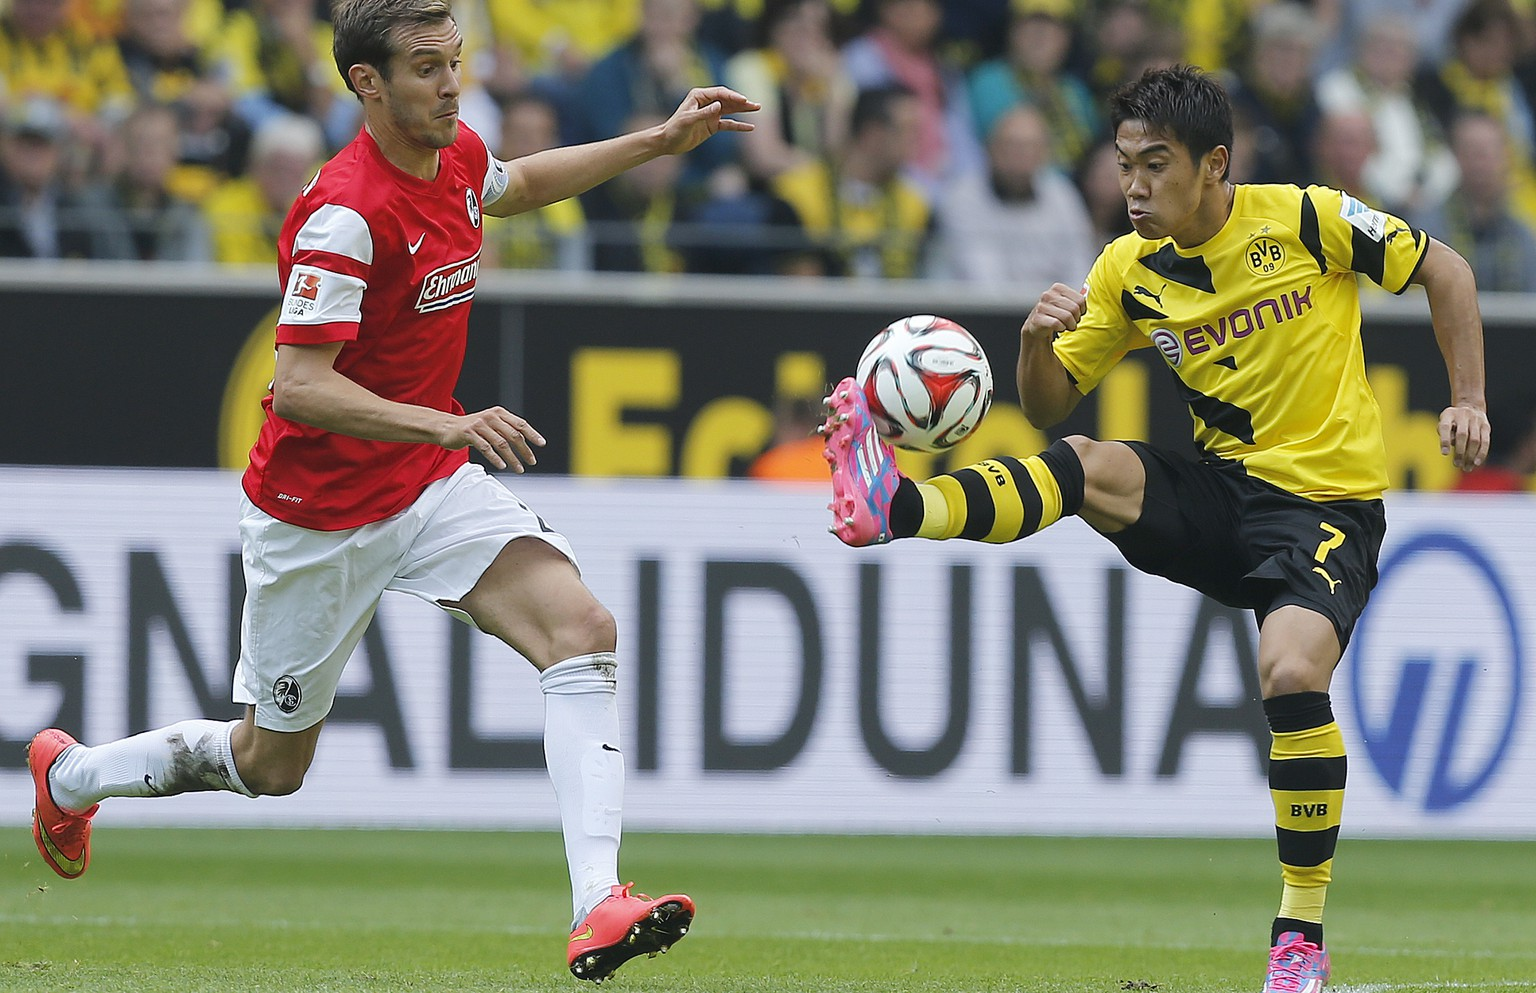 Dortmund's Shinji Kagawa from Japan, right, and Freiburg's Julian Schuster challenge for the ball during the German first division Bundesliga soccer match between BvB Borussia Dortmund  and SC Freiburg in Dortmund, Germany, Saturday, Sept. 13, 2014. (AP Photo/Frank Augstein)